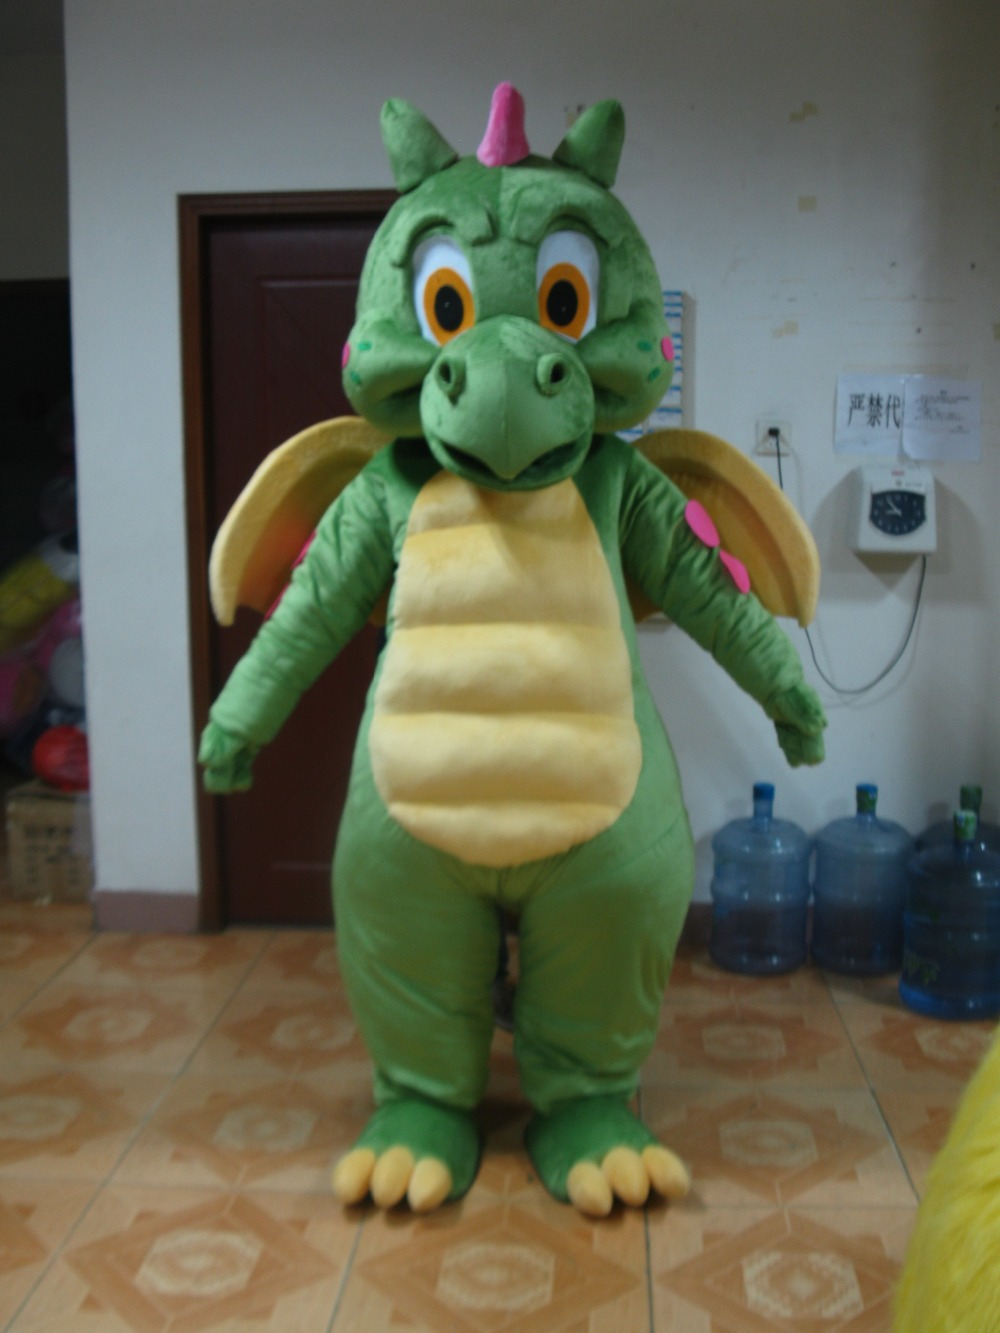 Hot sale 2017 Adult cartoon character cute green dragon Mascot Costume Halloween party costumes-in Anime Costumes from Novelty & Special Use    1